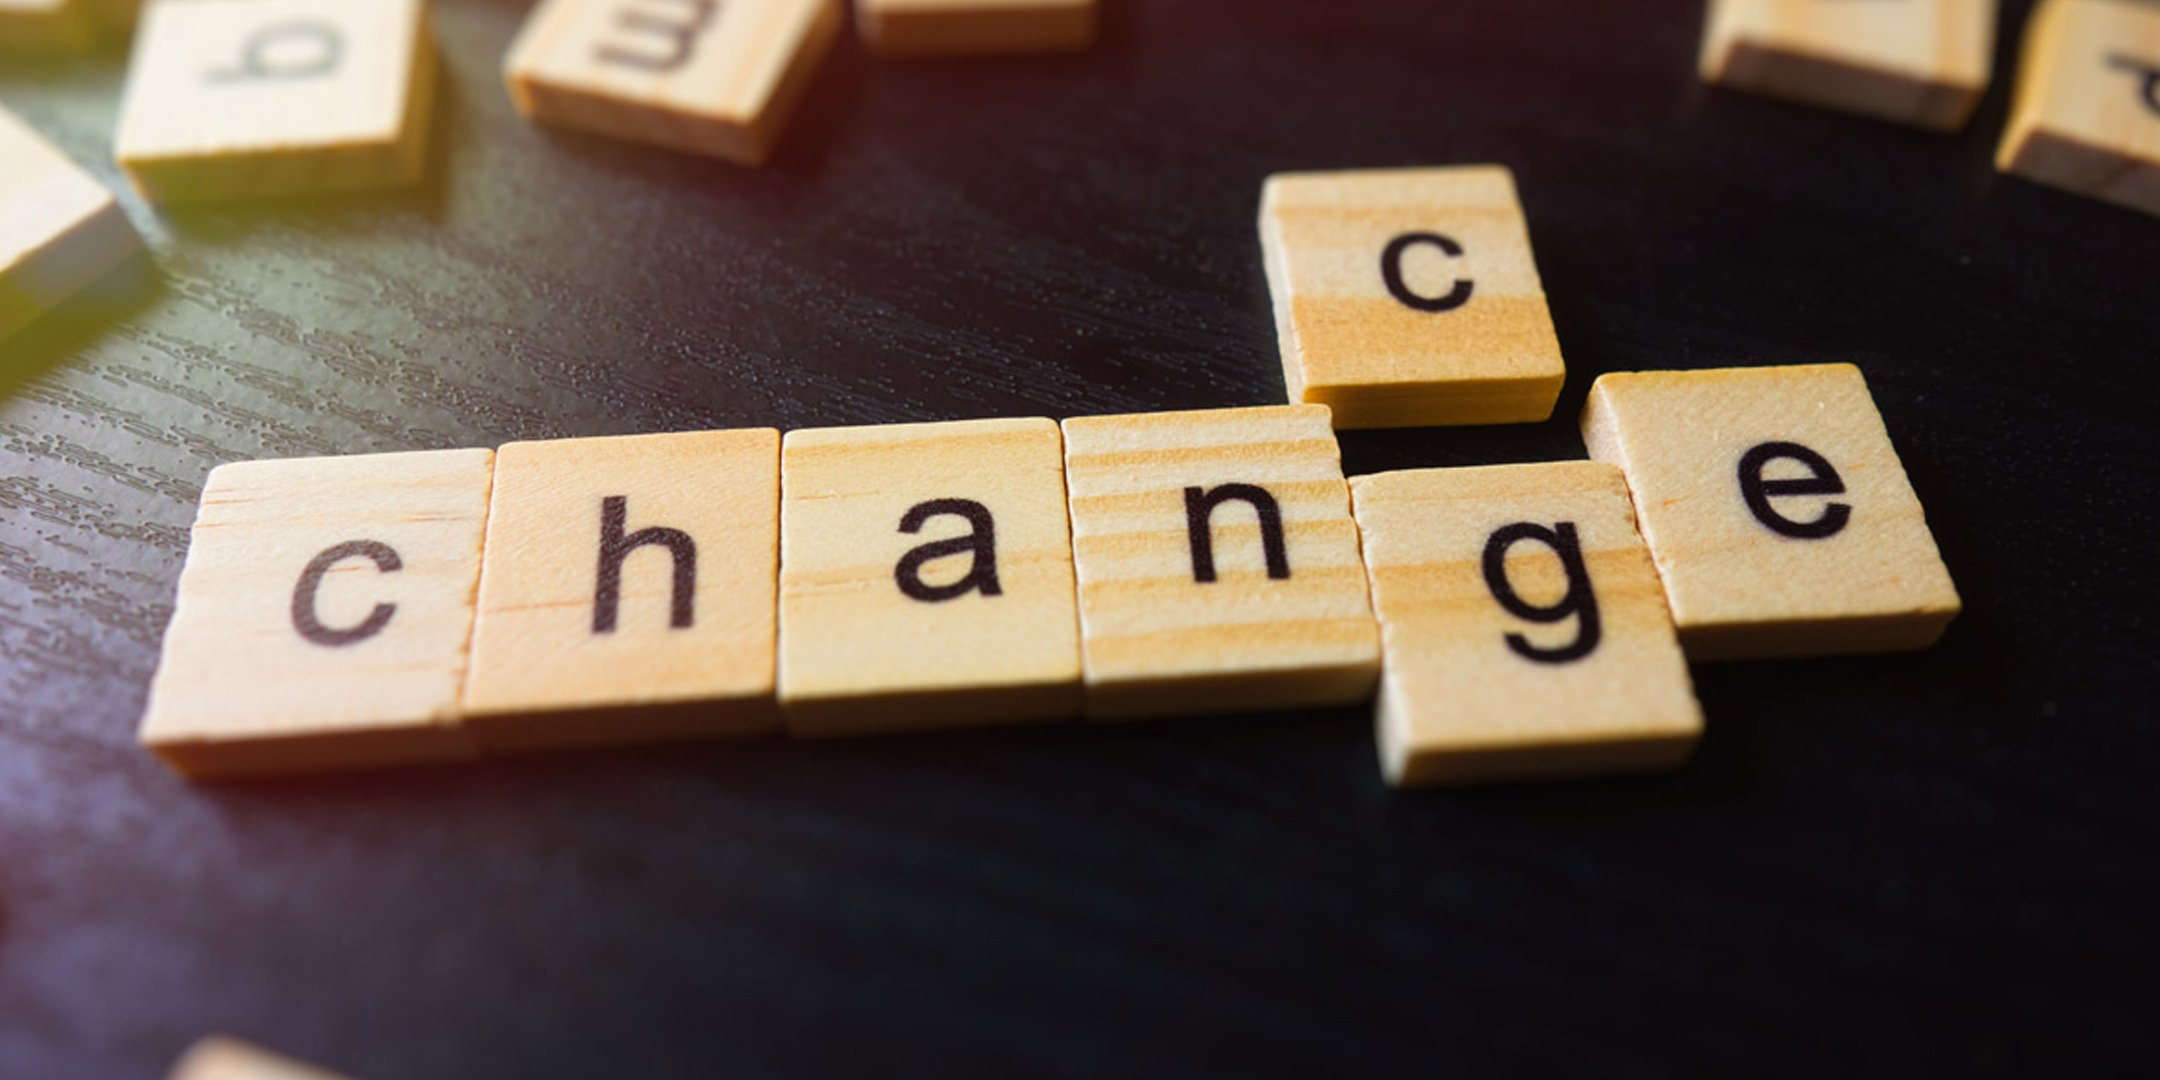 Wooden blocks spelling out change